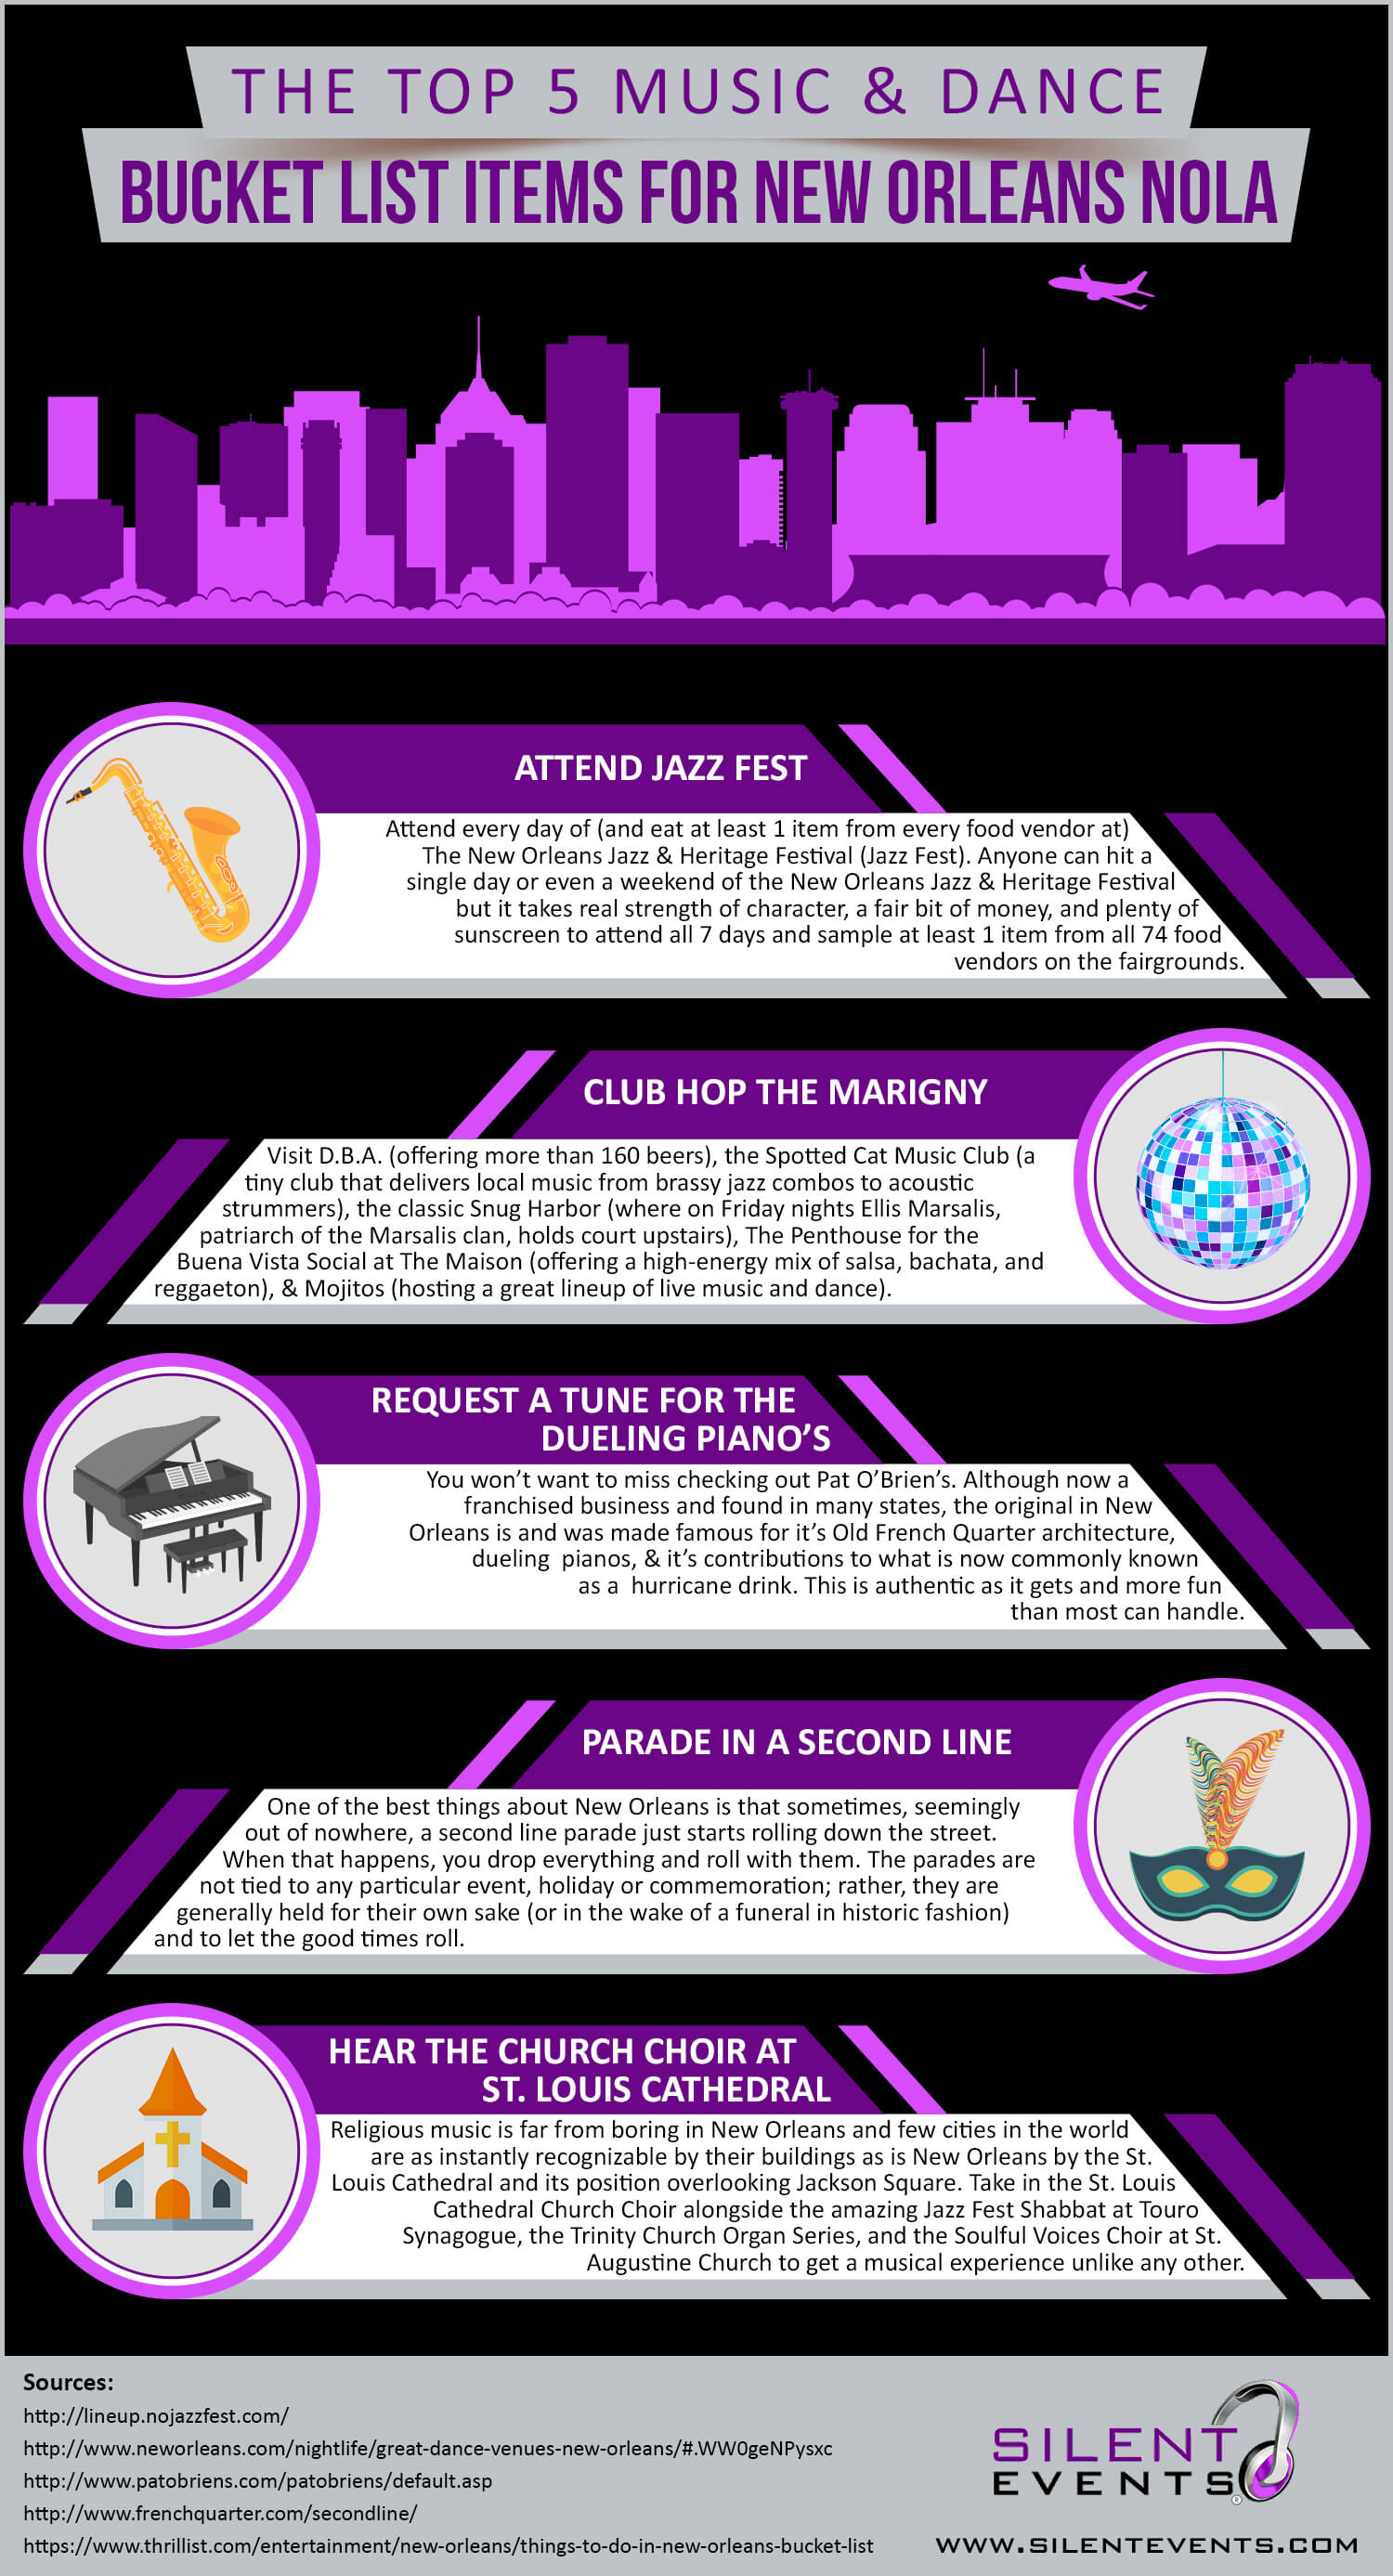 The Top 5 Music & Dance Bucket List Items for New Orleans NOLA (Infographic)